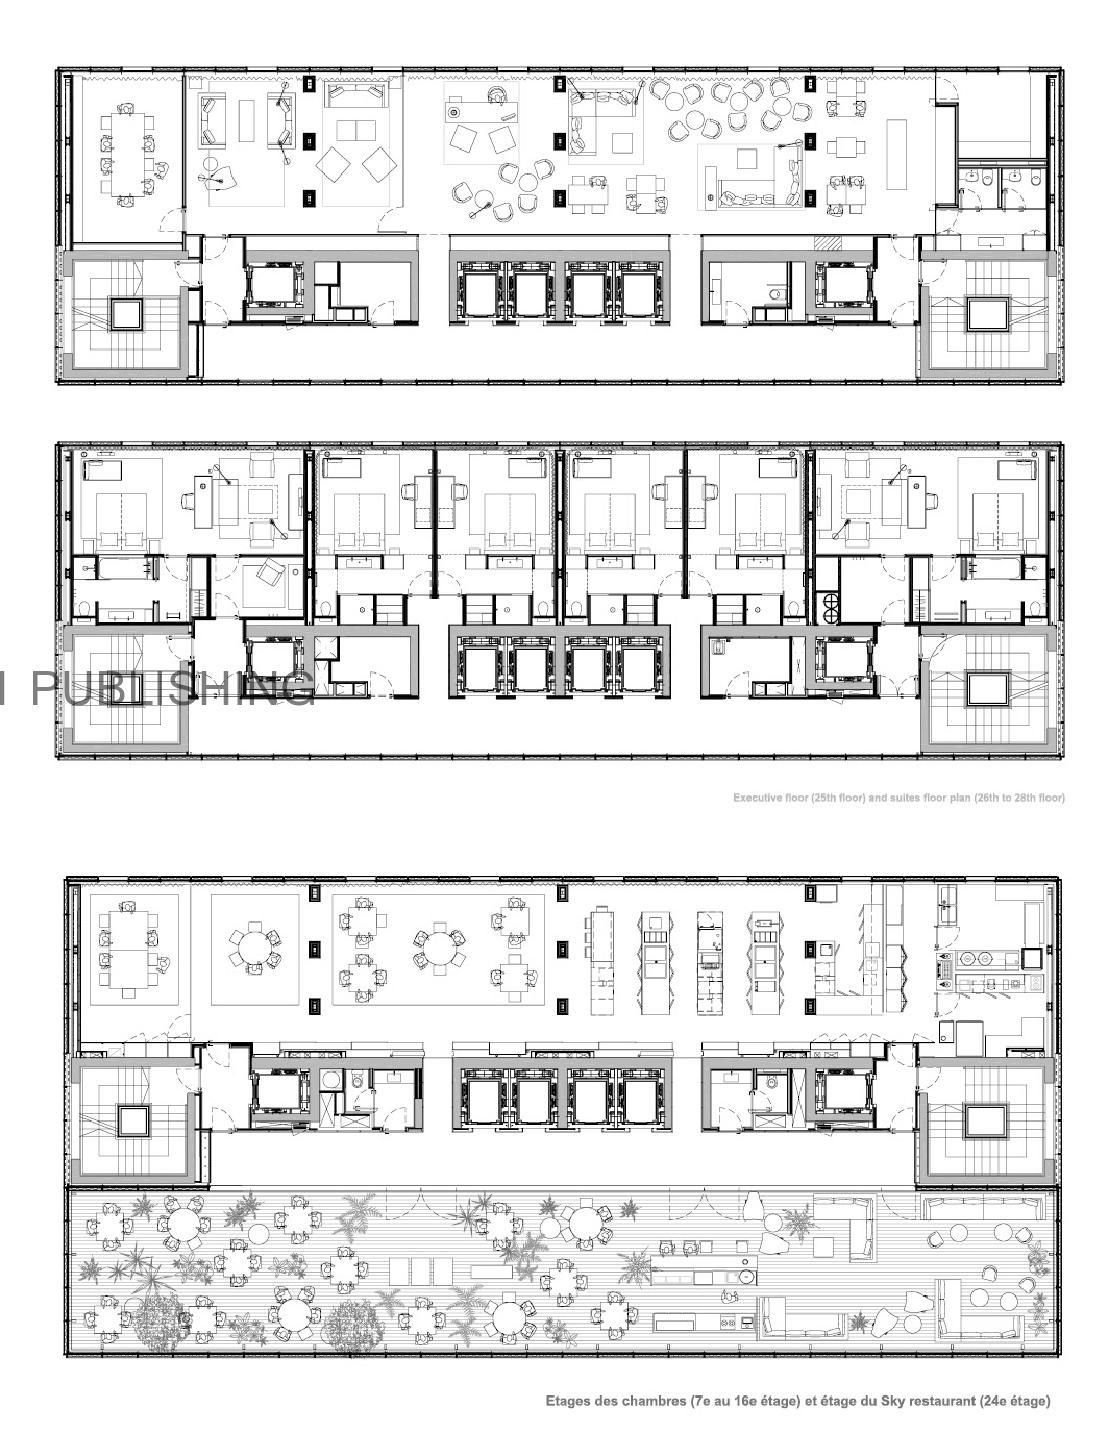 Hotel architecture hotel architecture architecture and for Hotel design layout